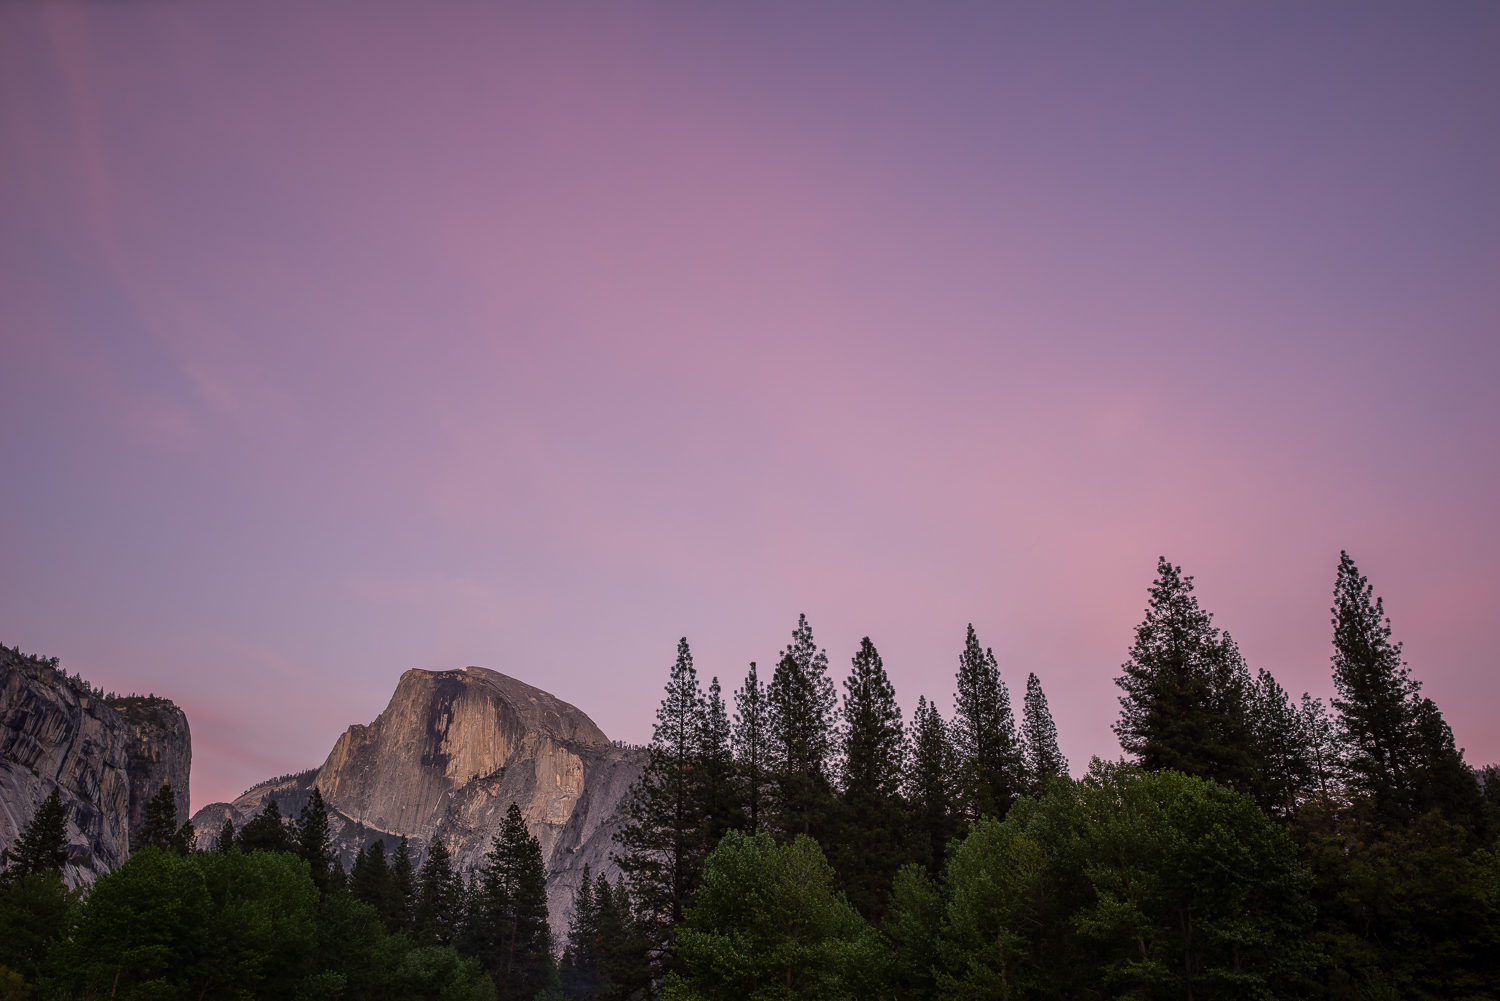 Half Dome at Sunset from a spot just off the Yosemite Village parking area